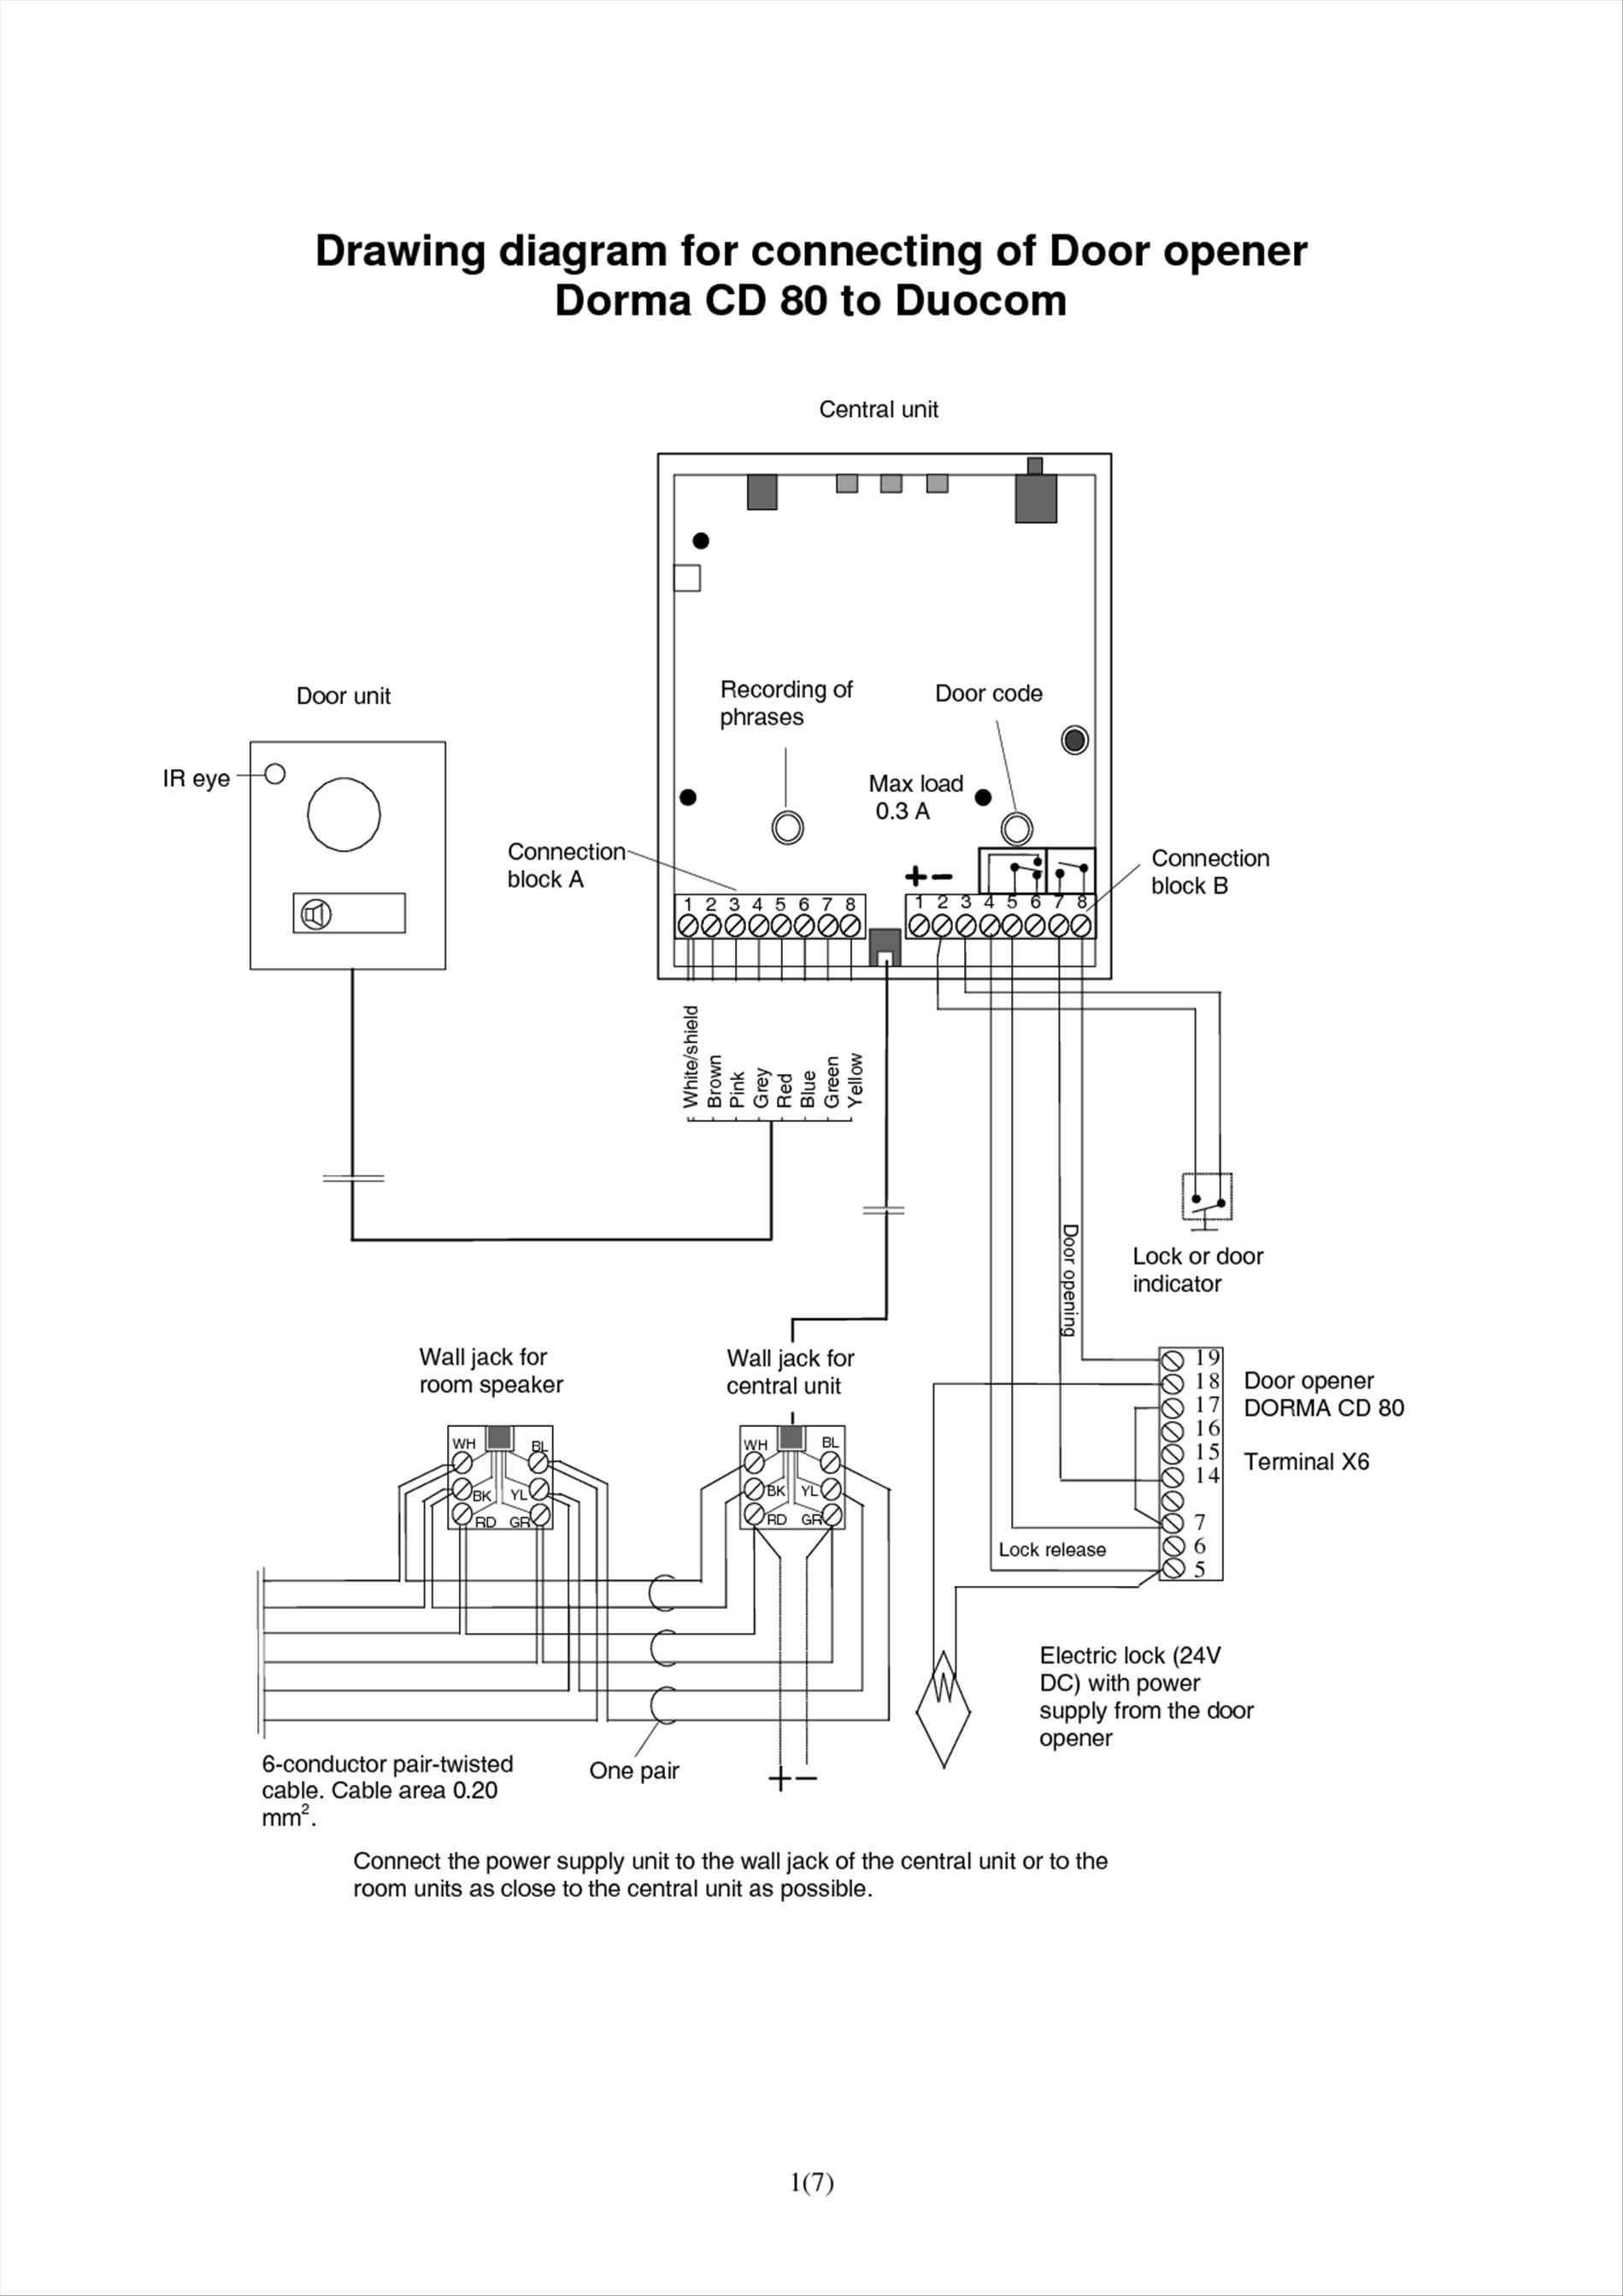 genie garage door opener sensor wiring diagram Collection-Genie Garage Door Opener Sensor Wiring Diagramgarage Doors 33 For 5-l